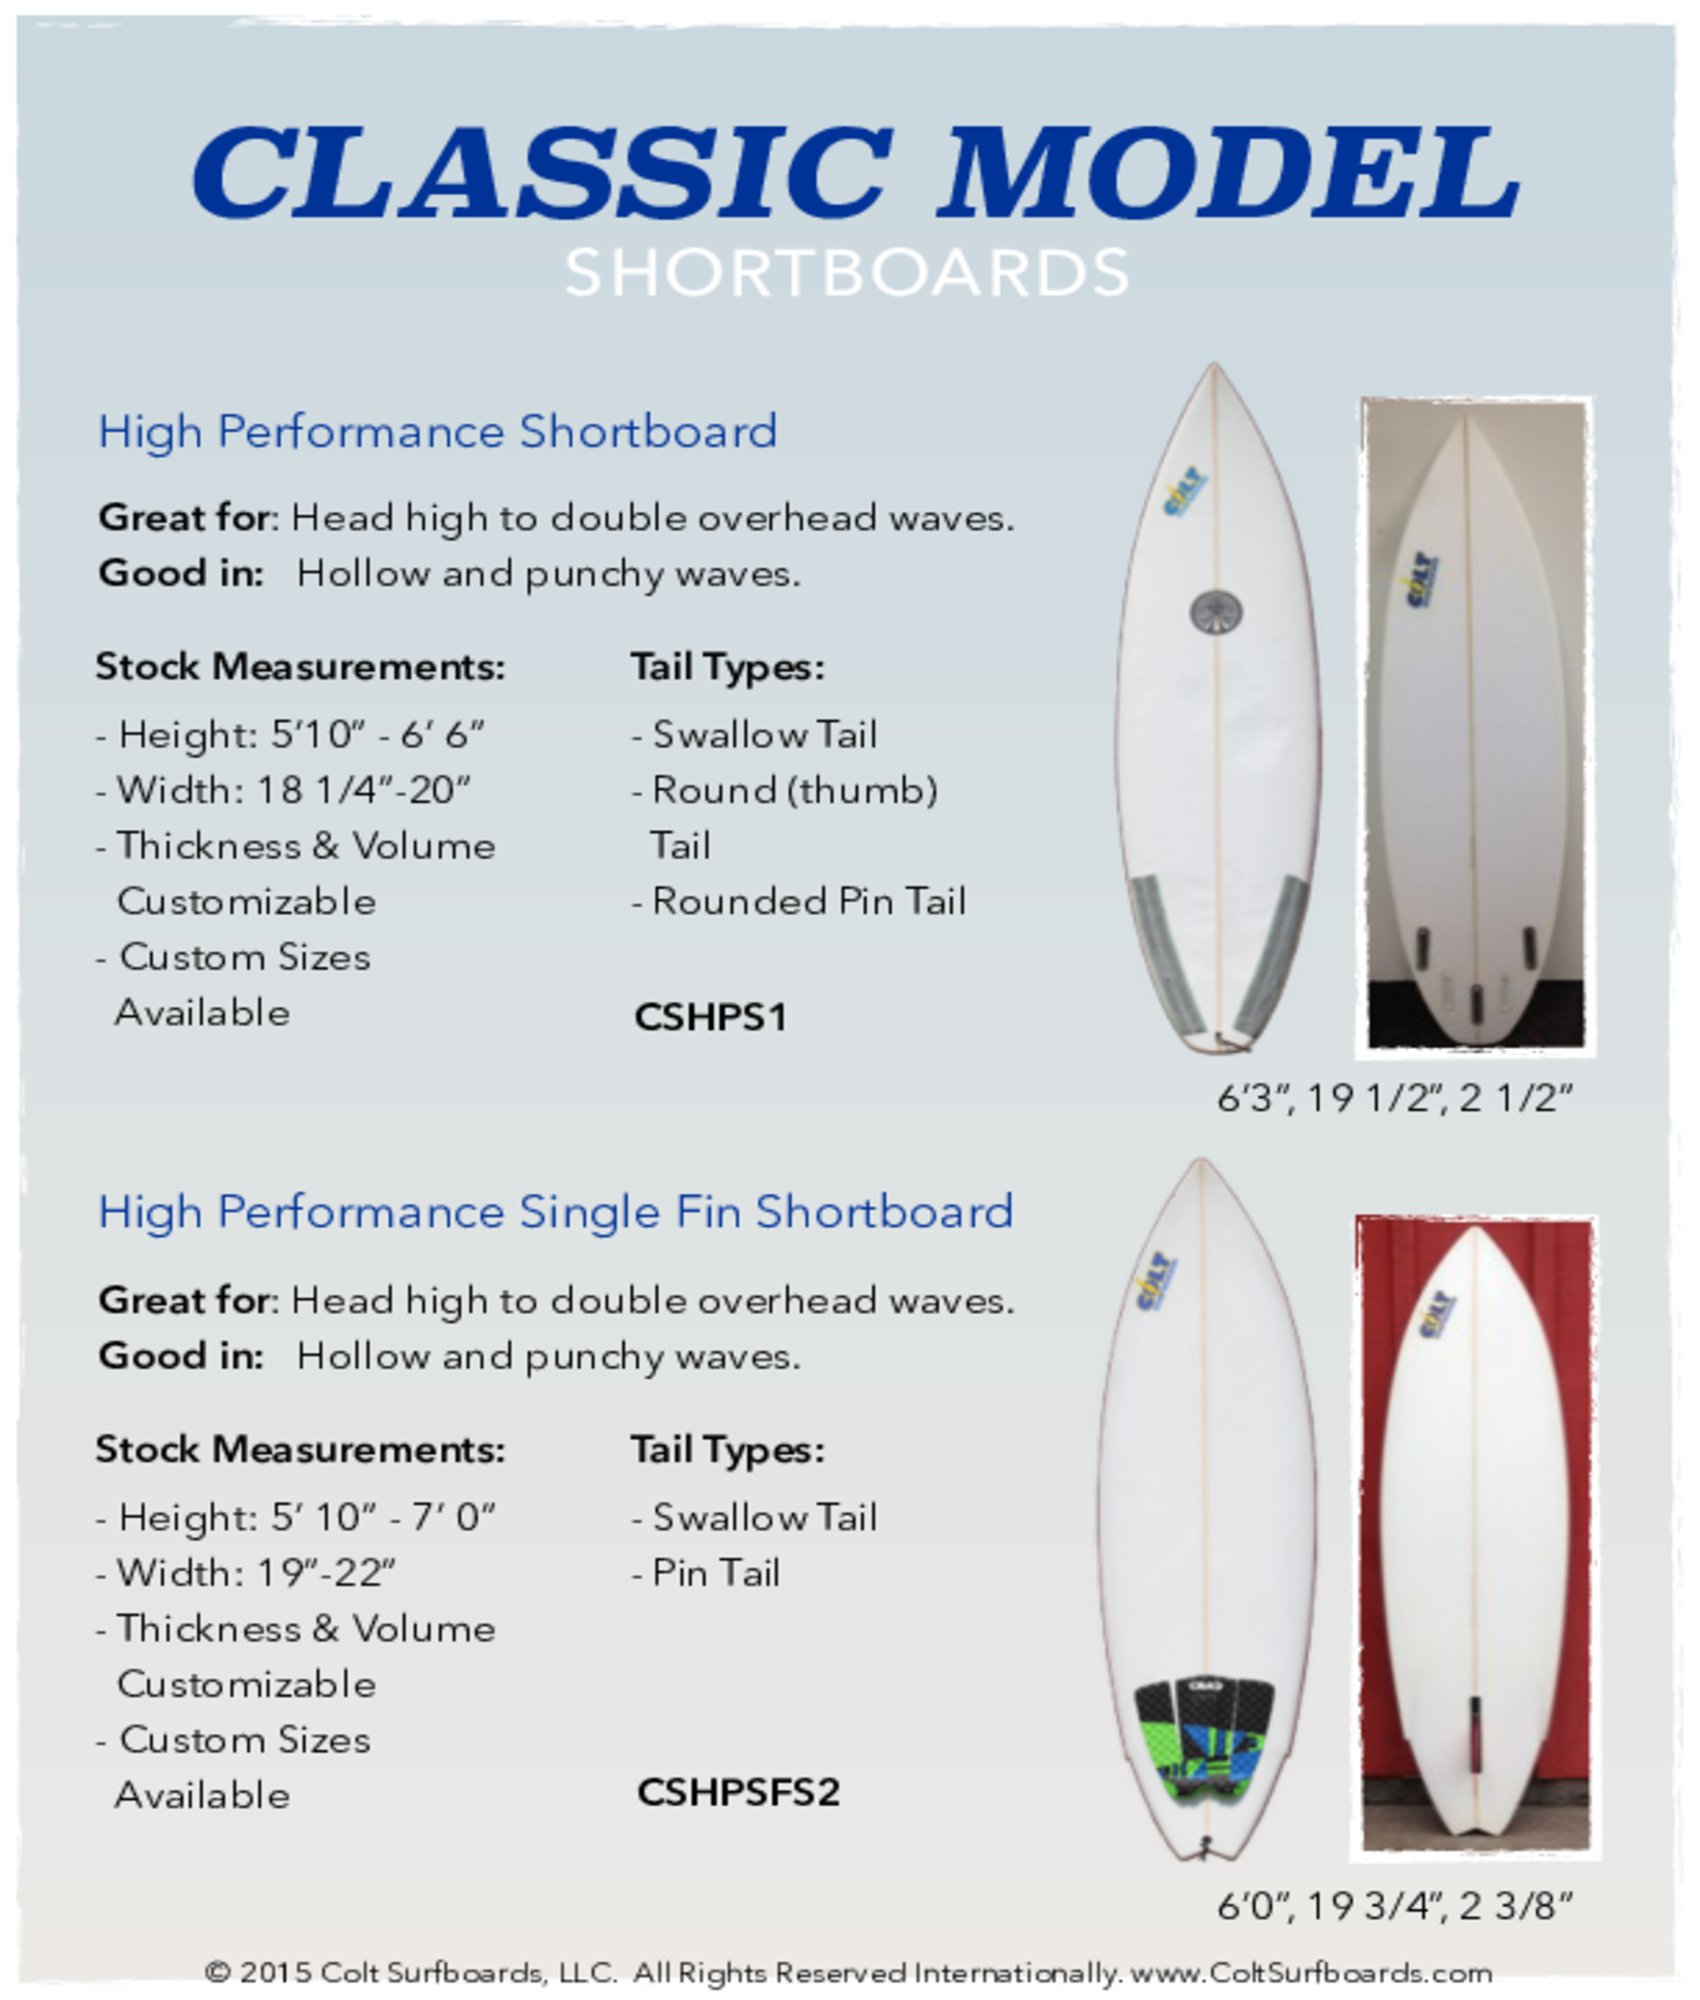 Classic_Model_High_Performance_Shortboard_and_High © 2015 Colt Surfboards LLC All rights reserved internationally 3